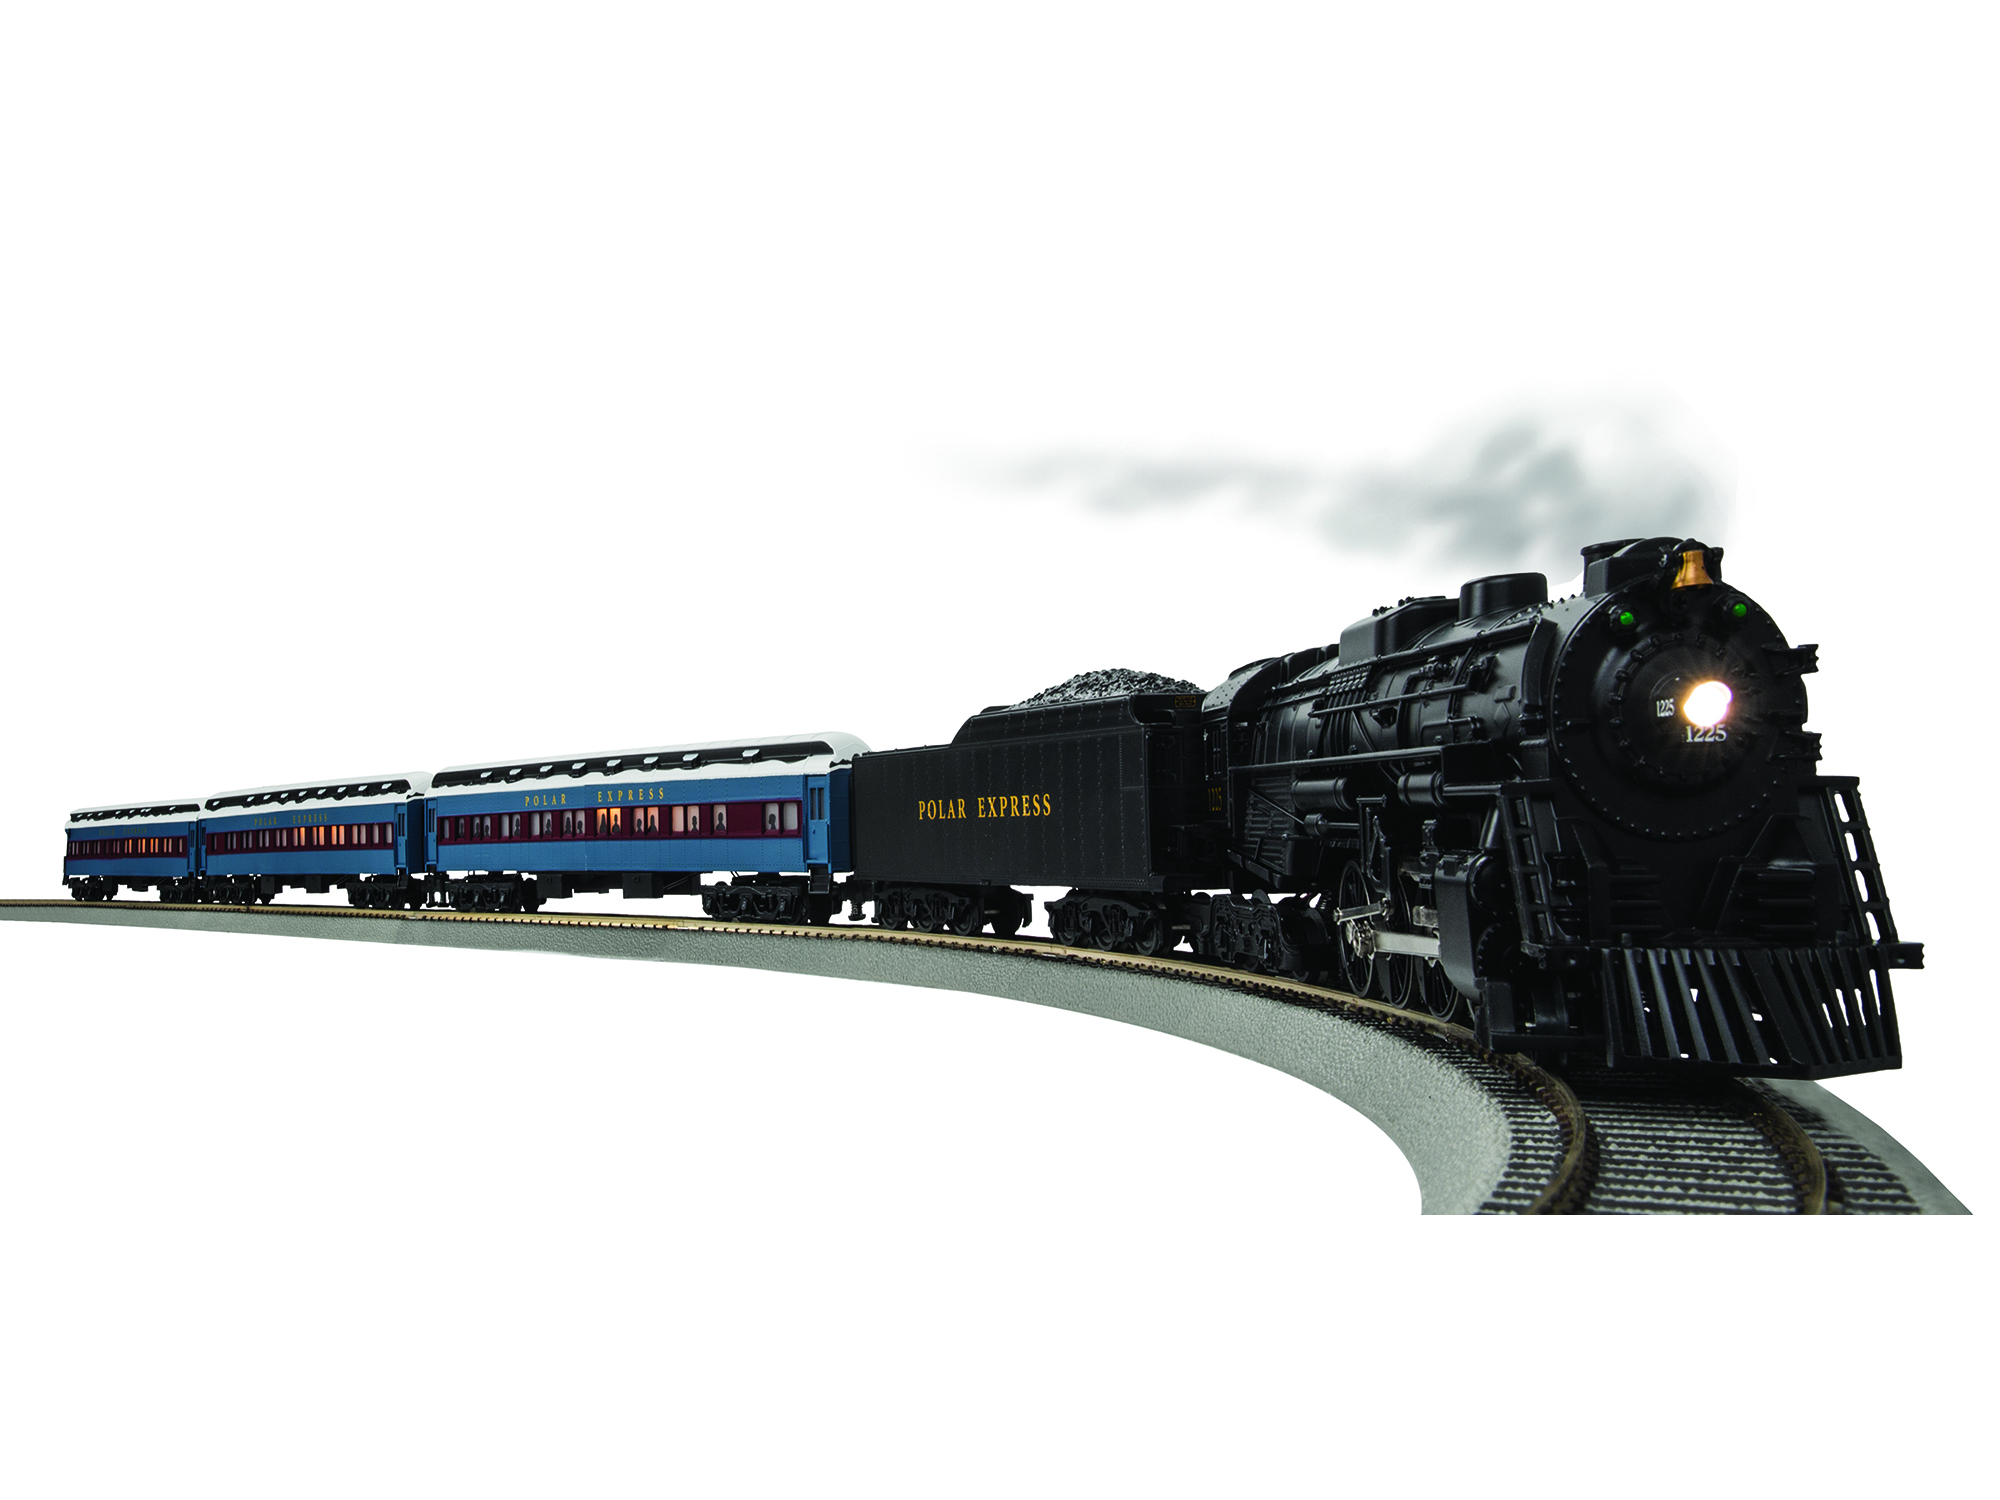 Polar Express Train Sets: Find The Polar Express at Lionel